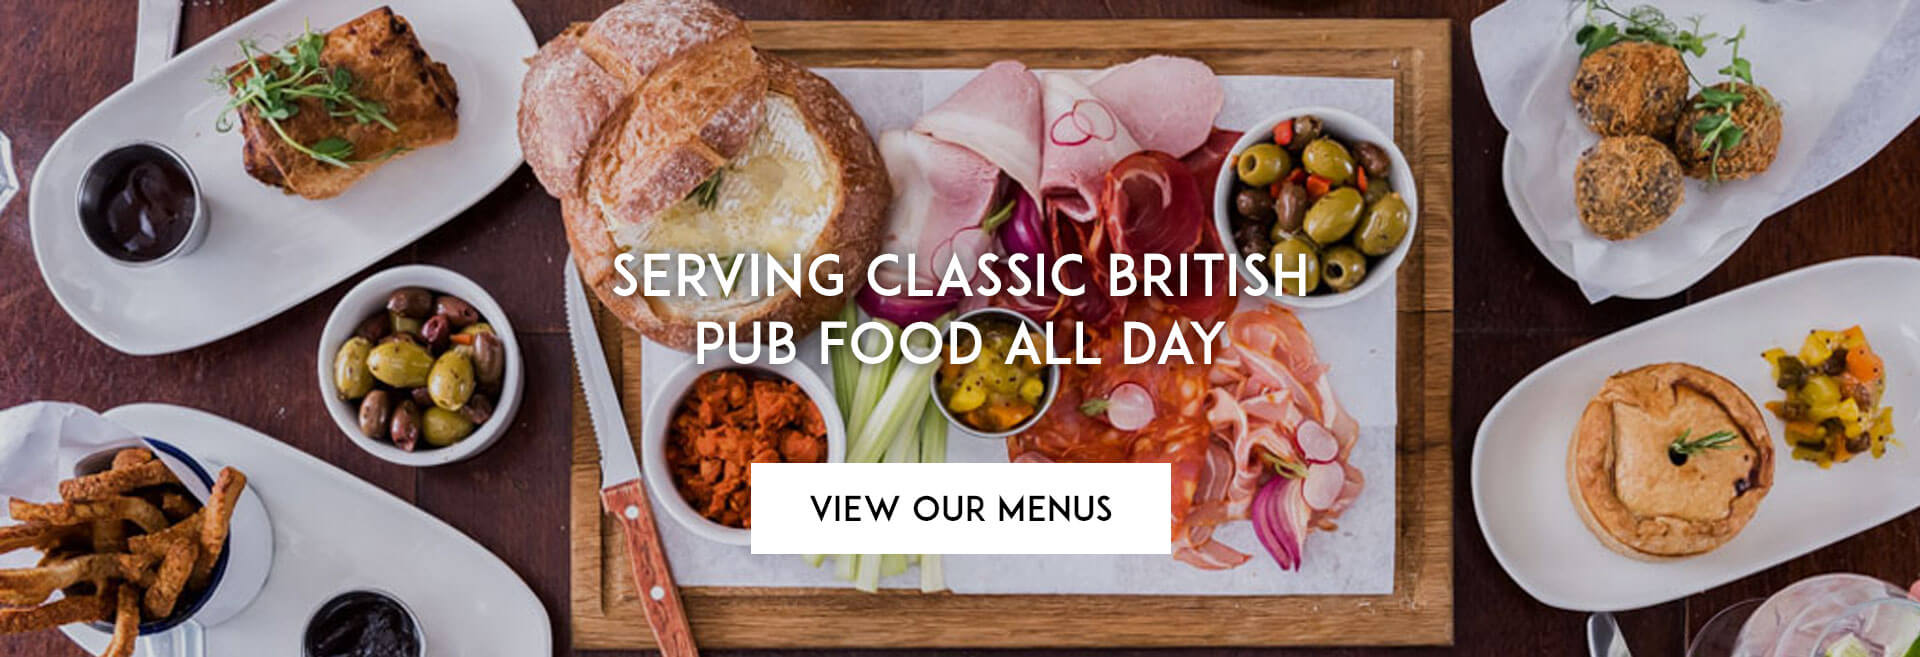 View our Menu at The Old White Lion